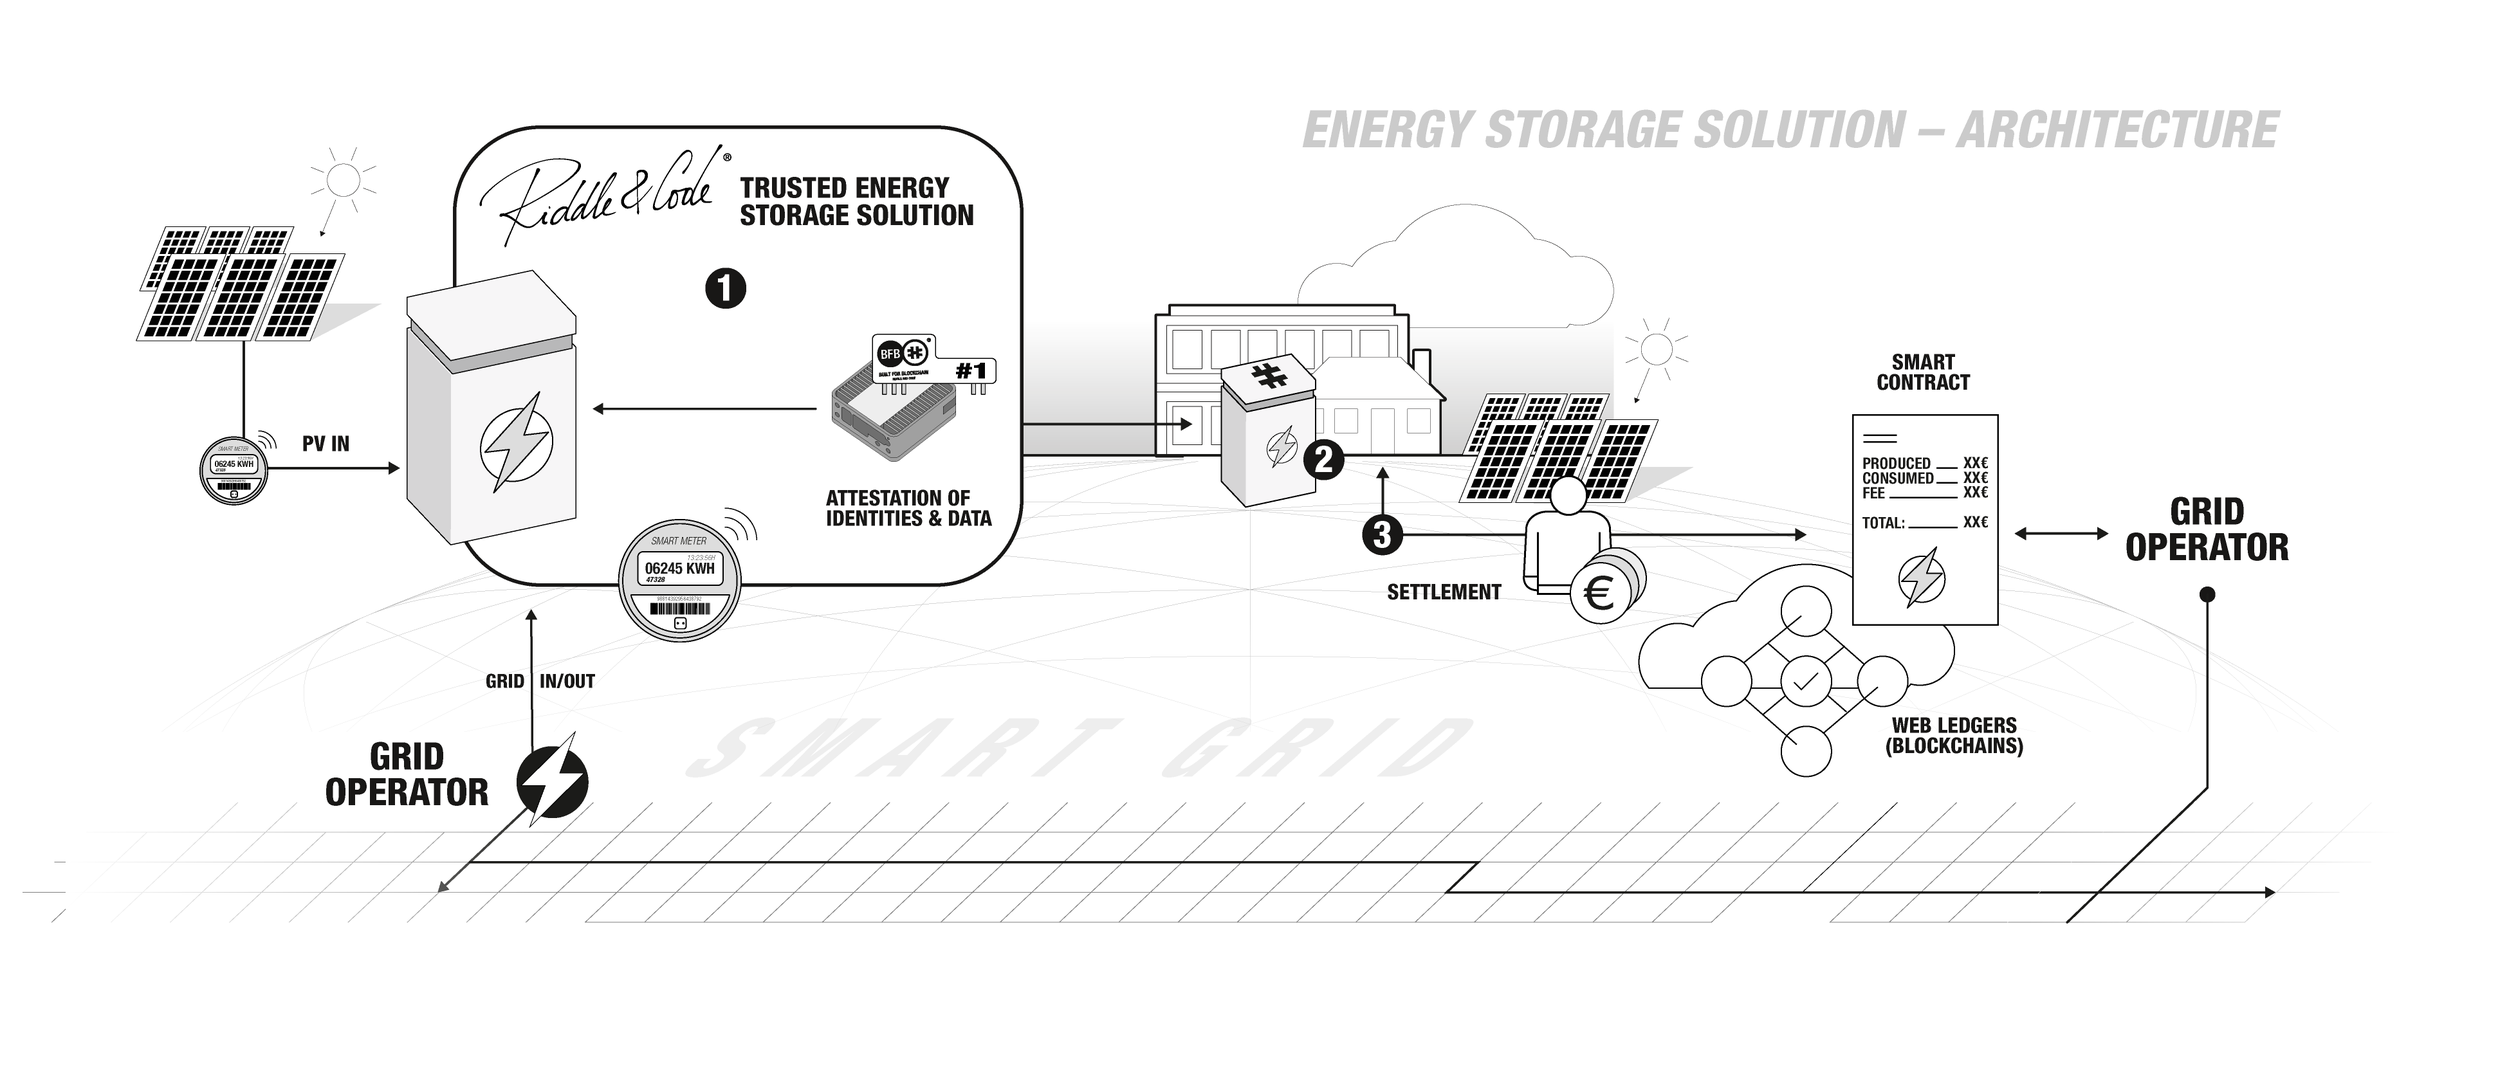 Energy Storage Solution - Architecture